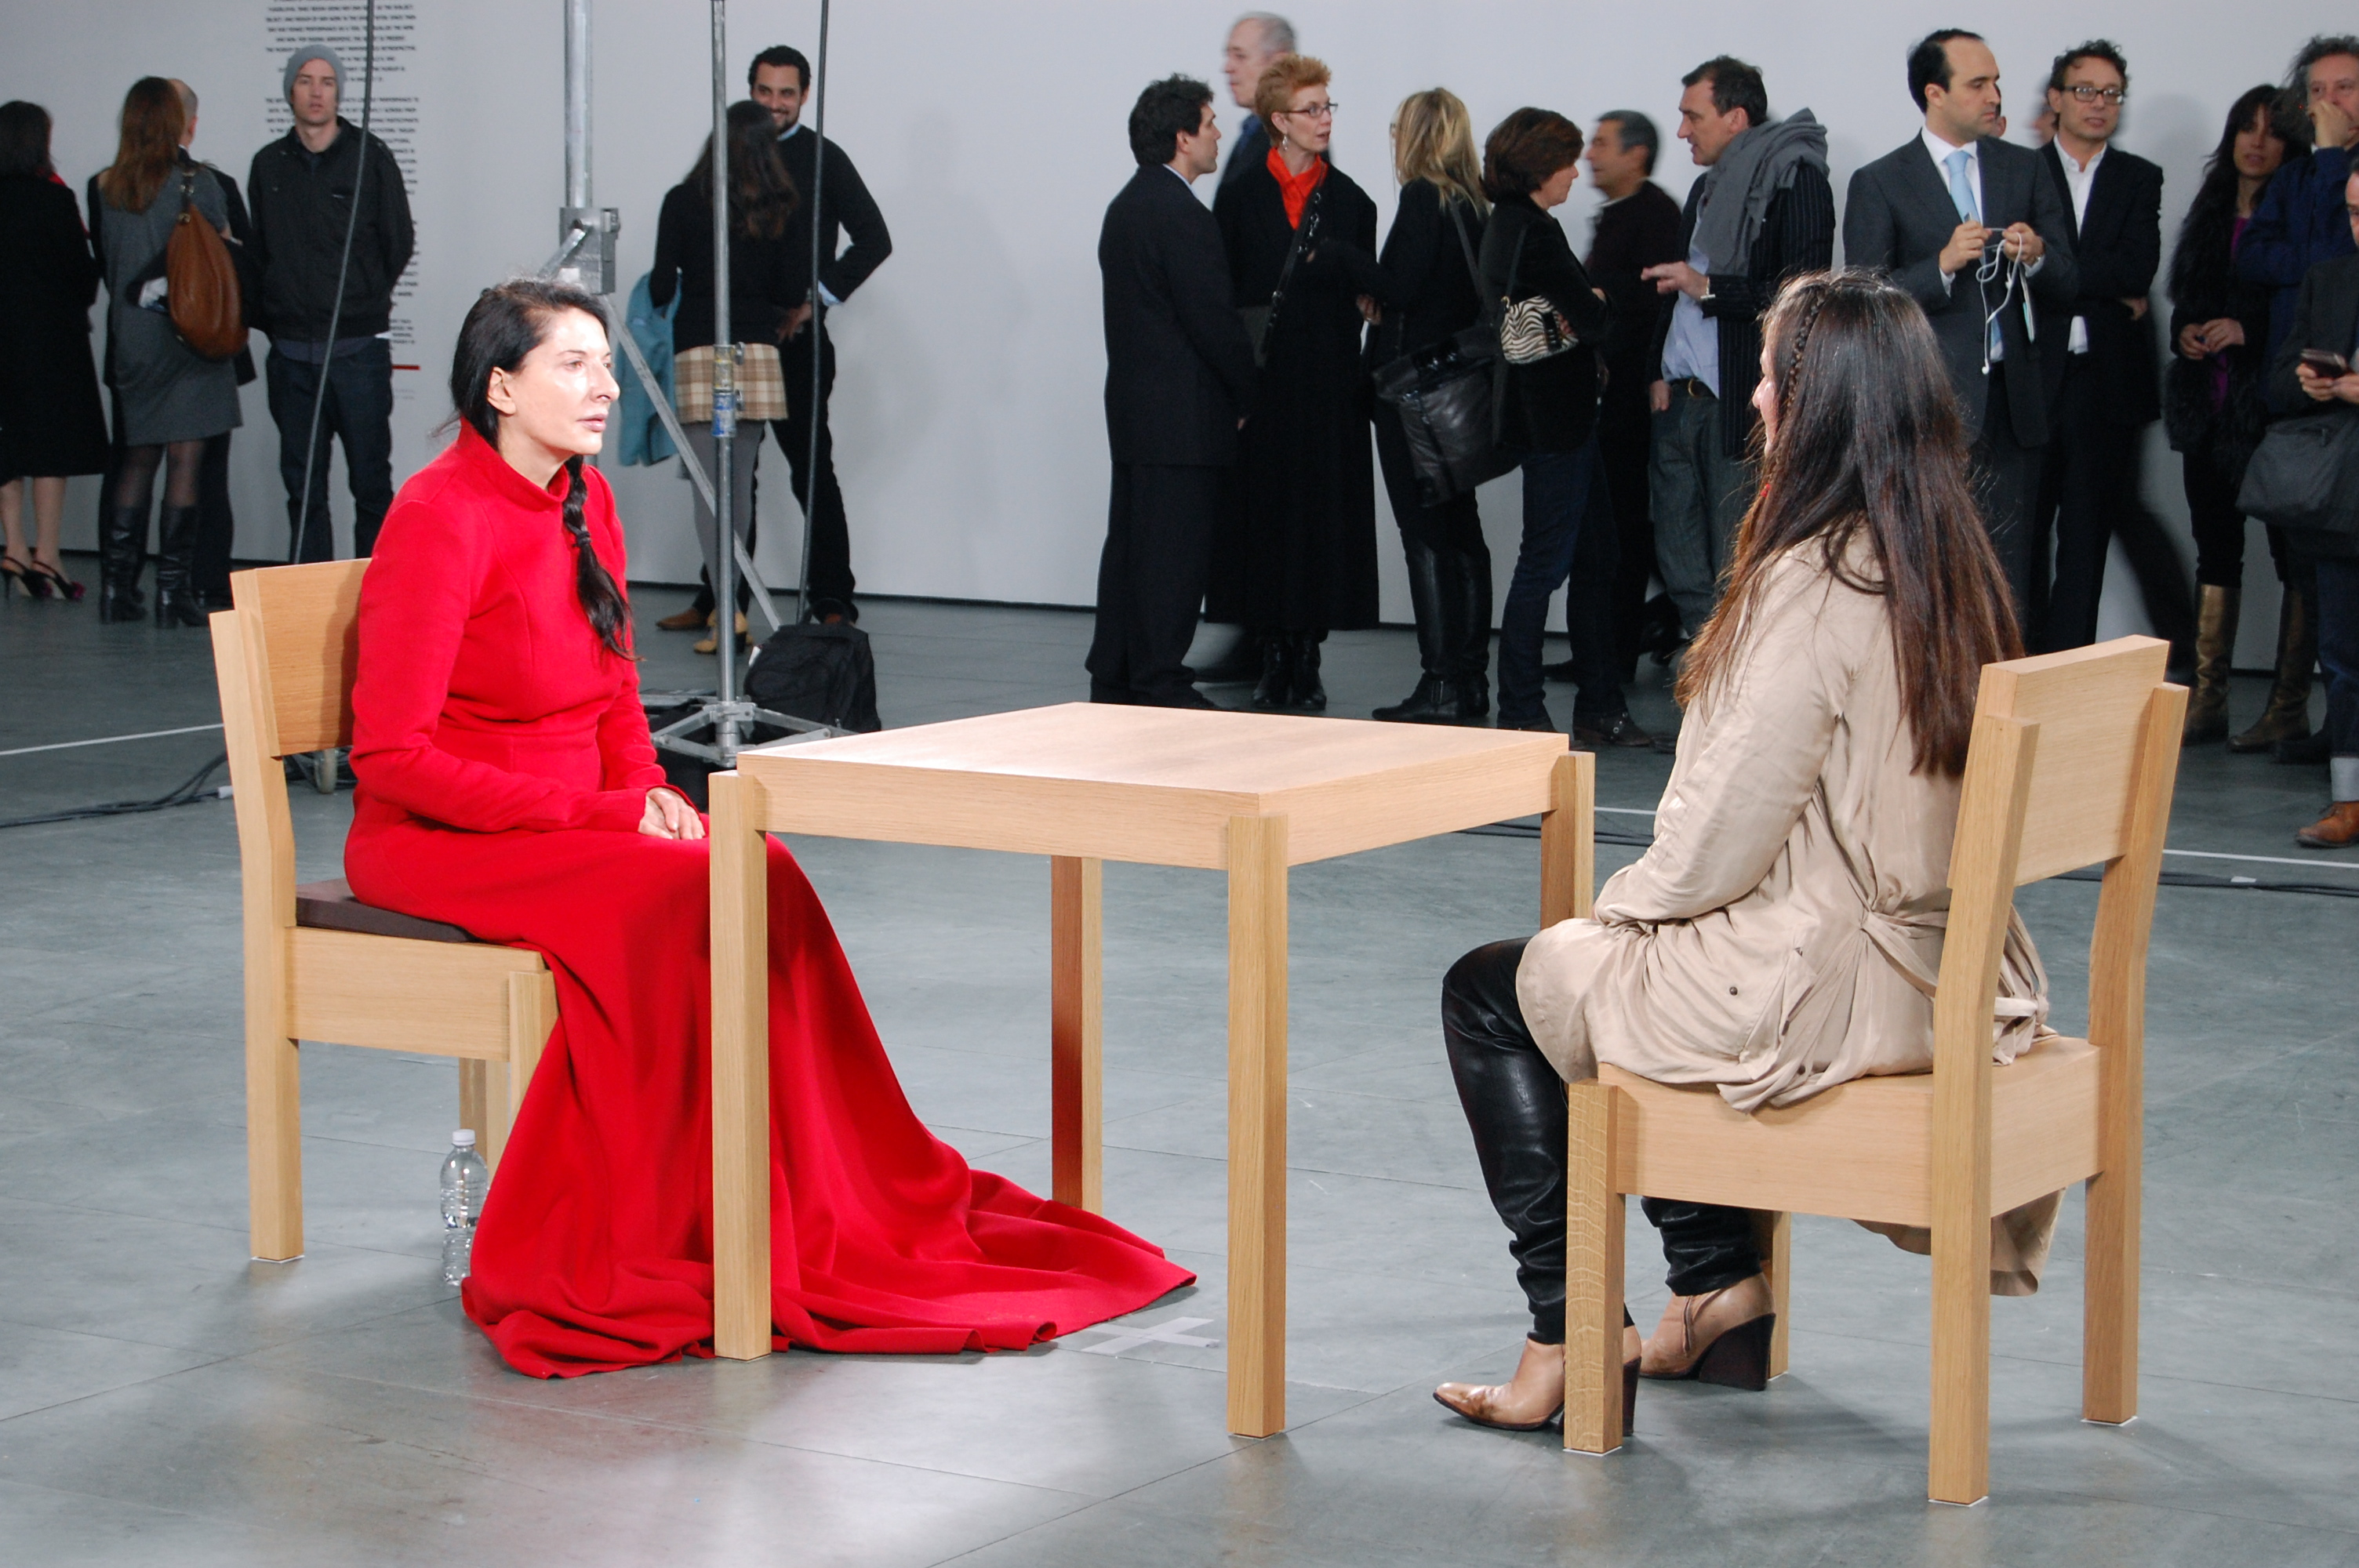 Filemarina abramovi the artist is present 2010g wikimedia filemarina abramovi the artist is present 2010g thecheapjerseys Image collections